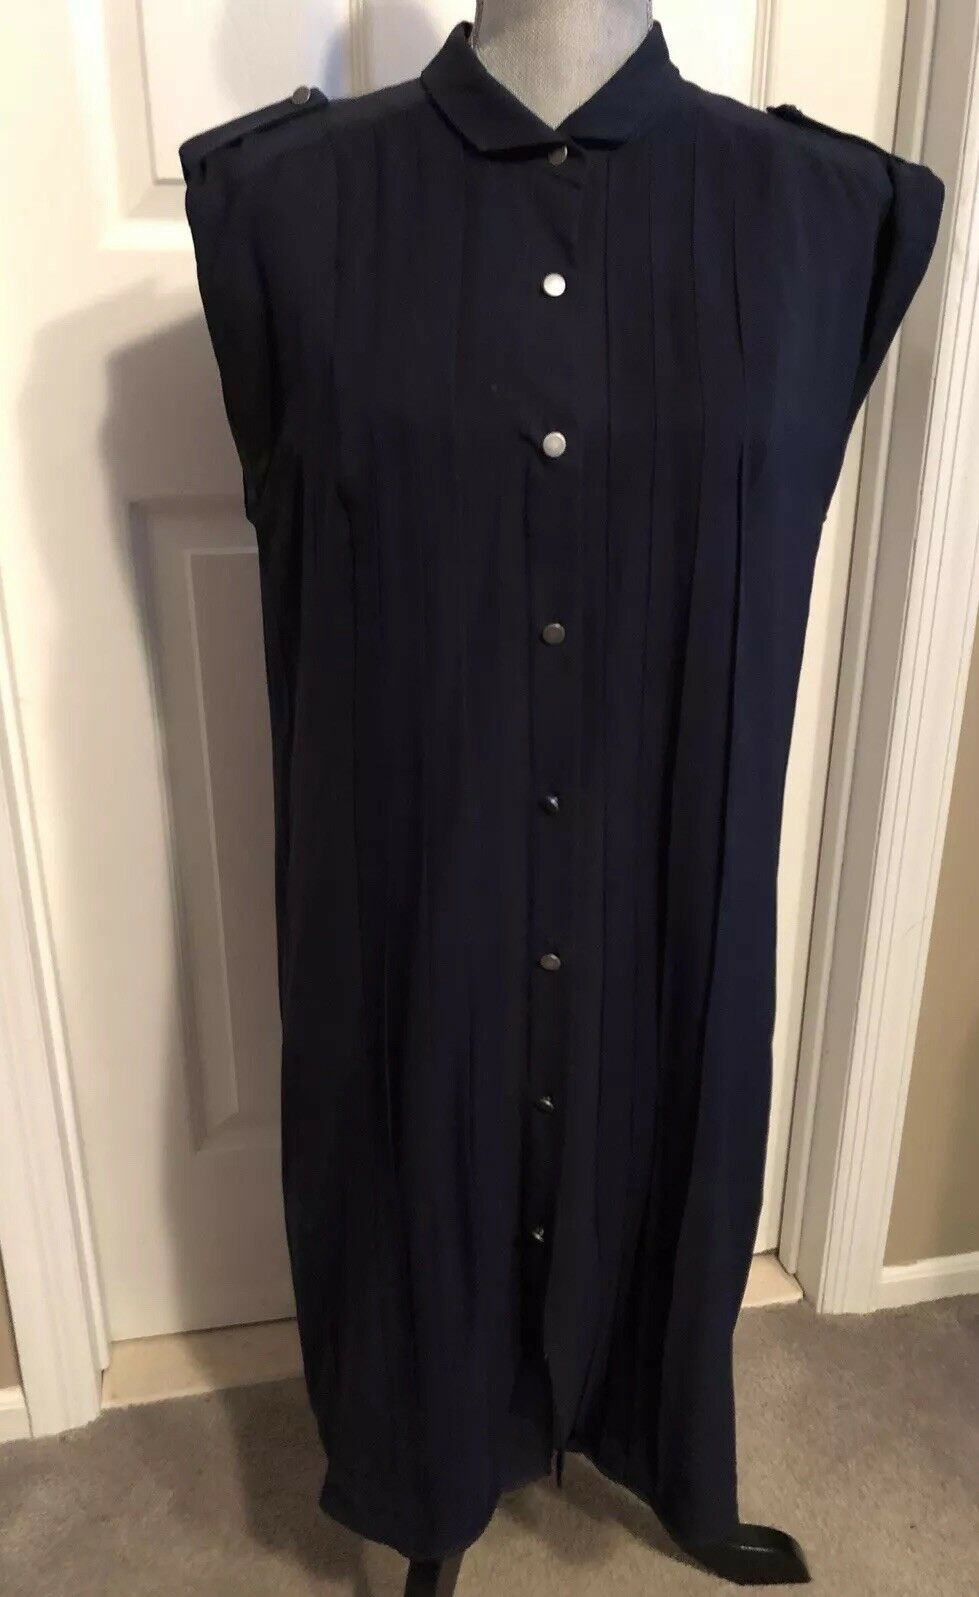 ADAM Lippes Dress 100% Silk Buttons Down Pleated SZ 10